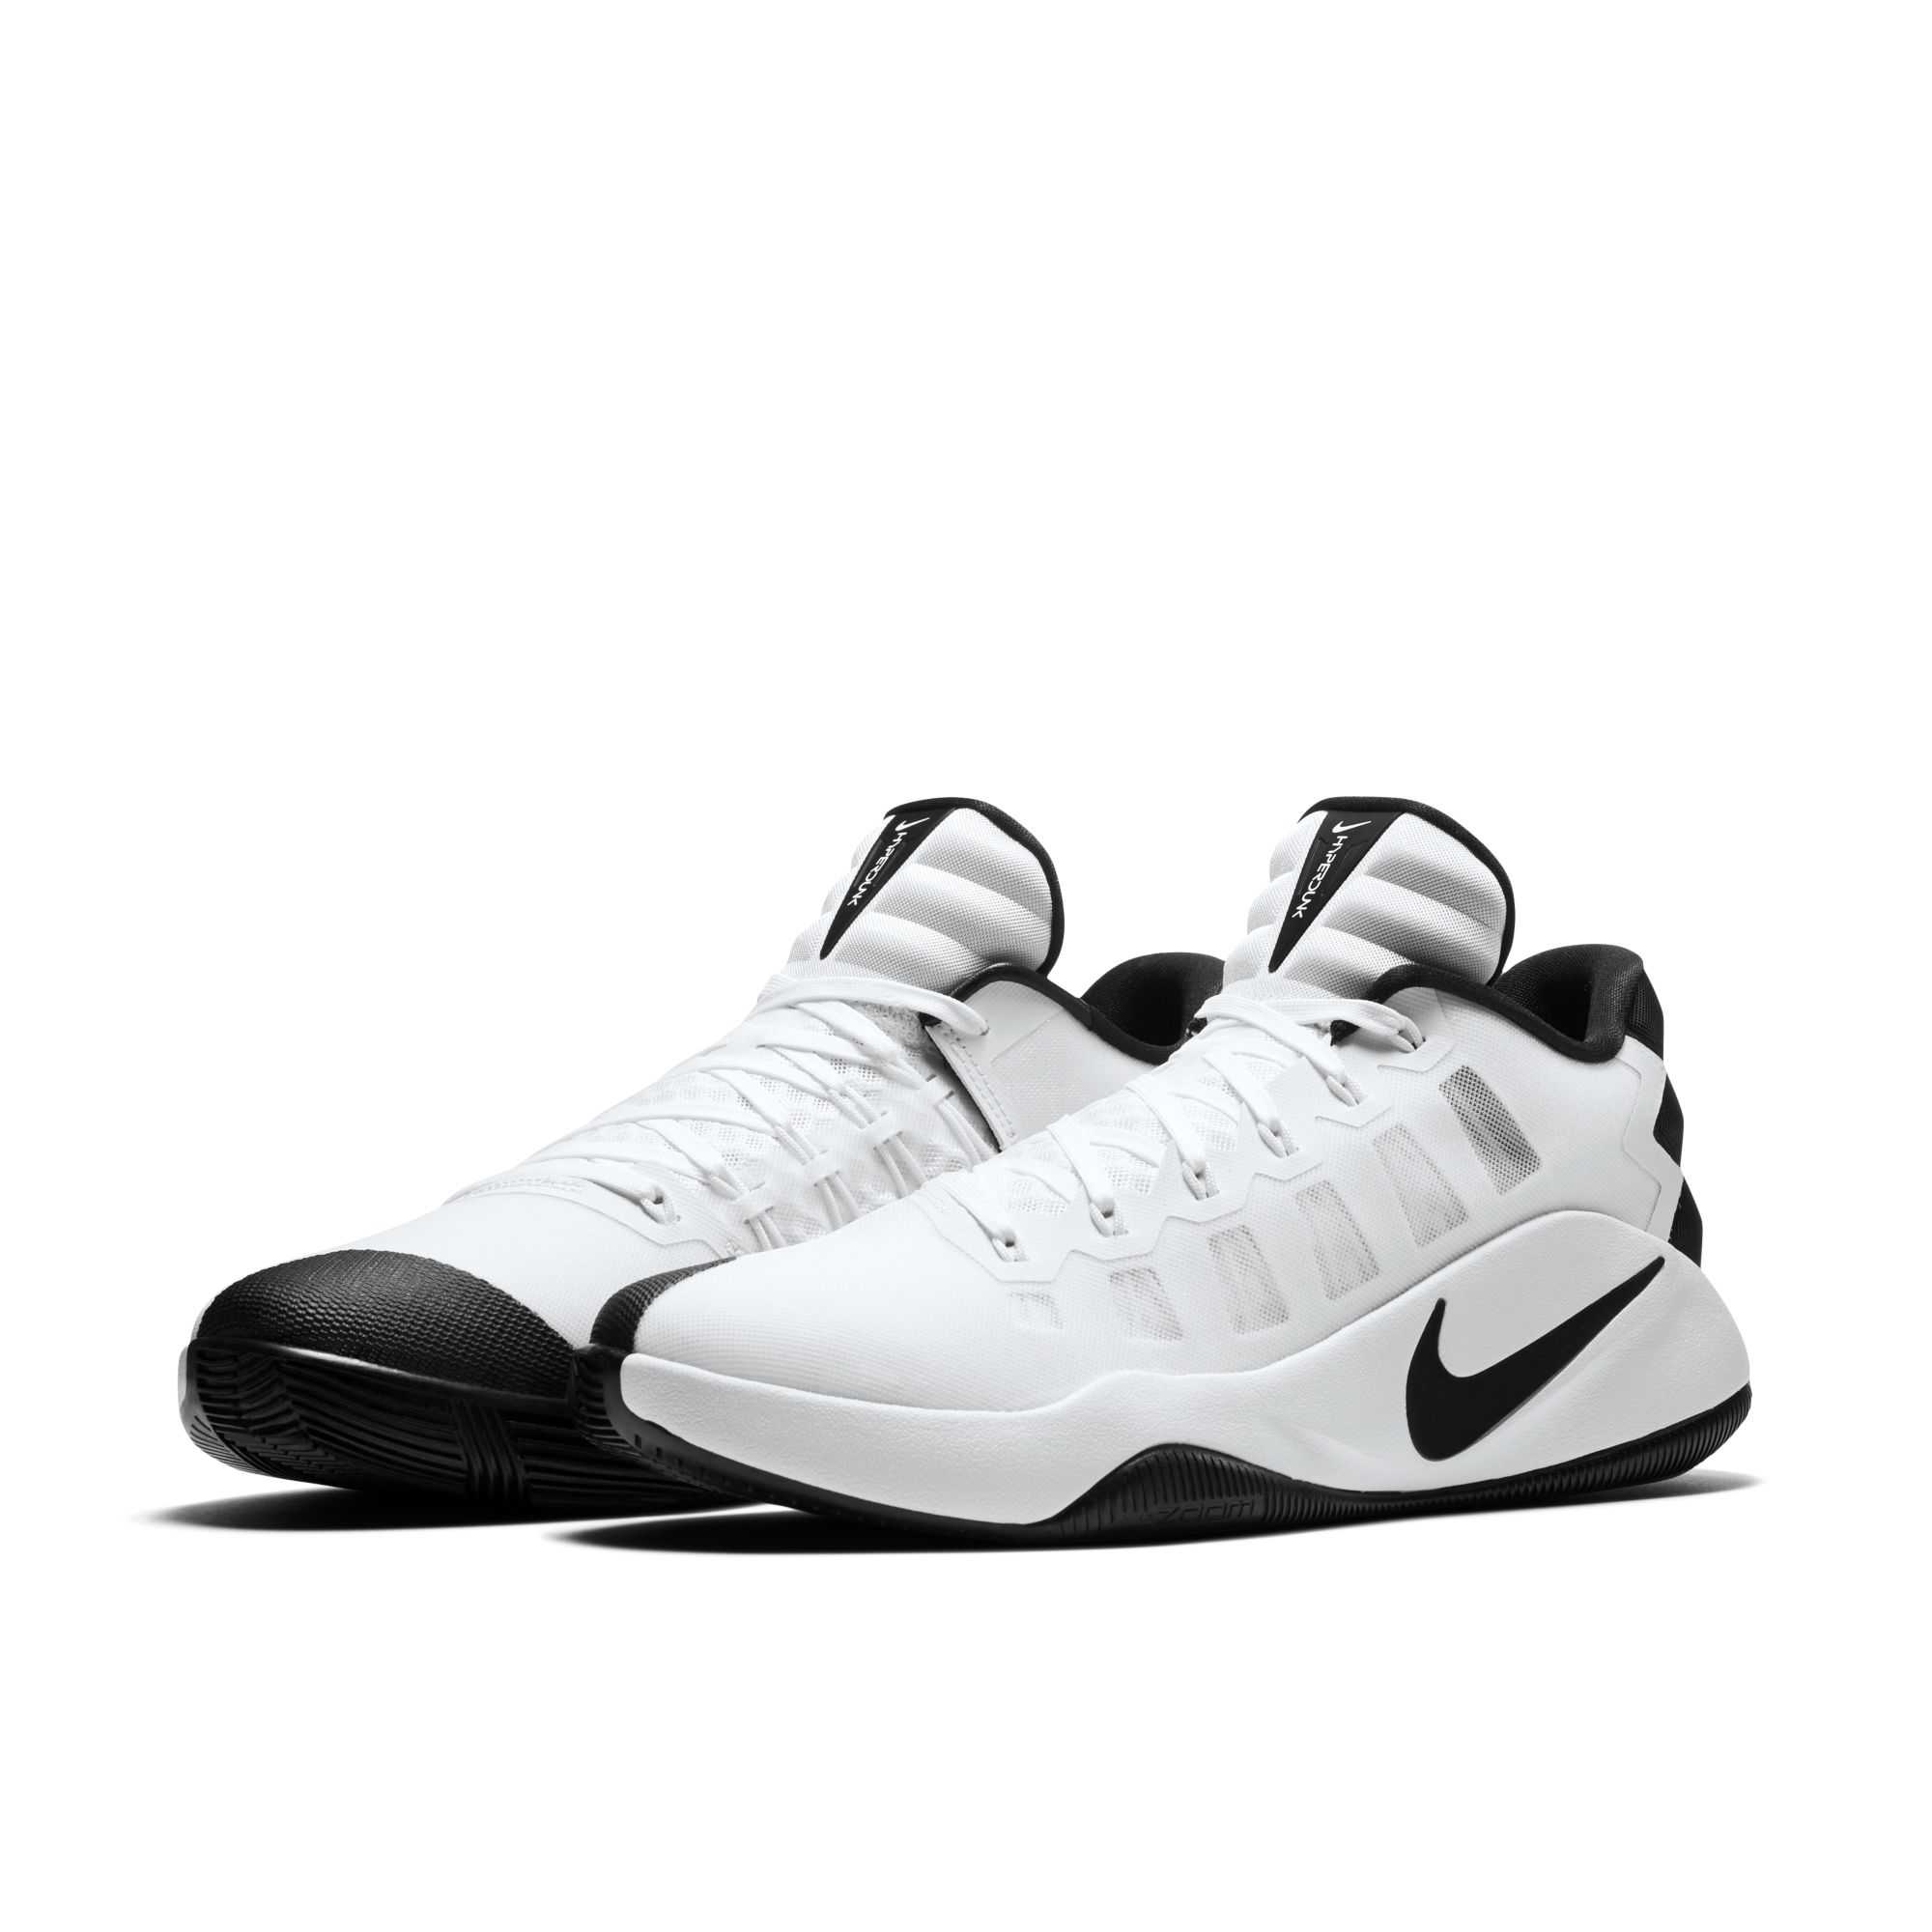 nike hyperdunk low white black